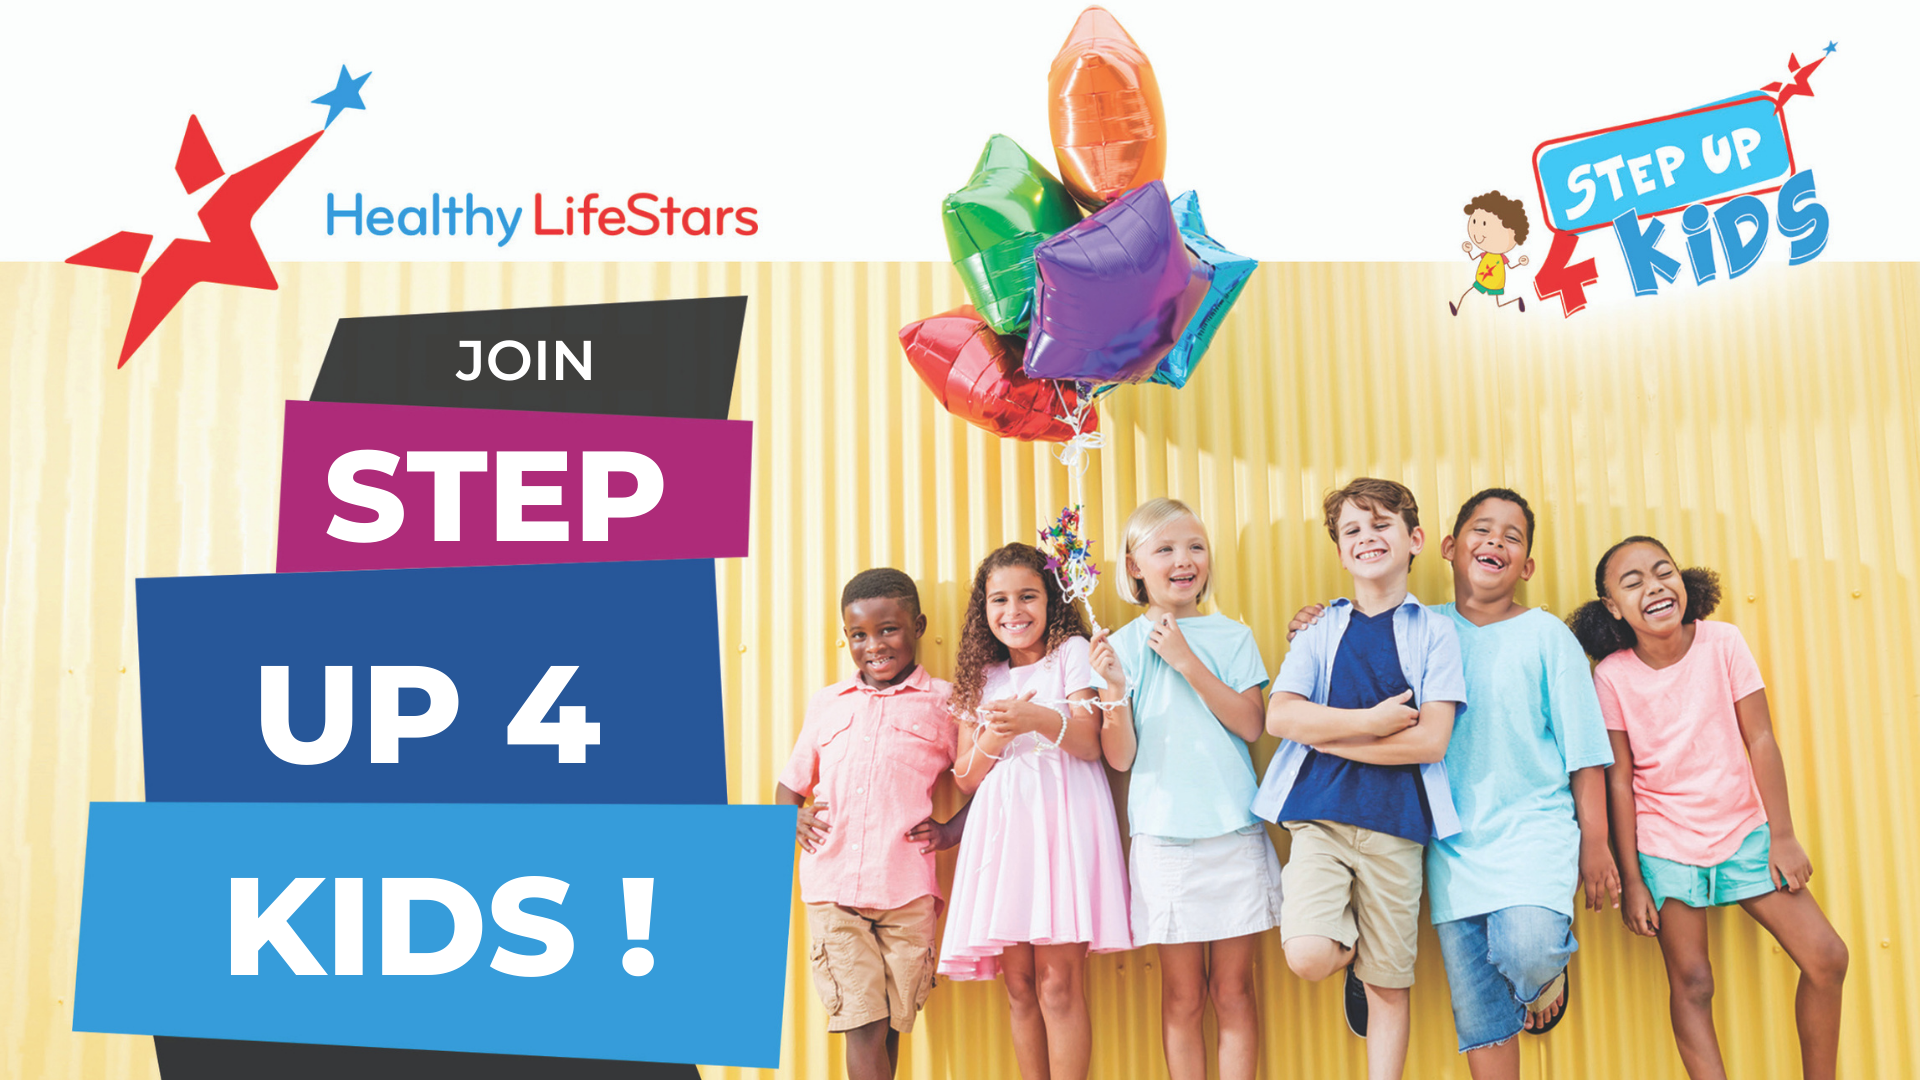 StepUp4Kids Celebration and Fundraiser